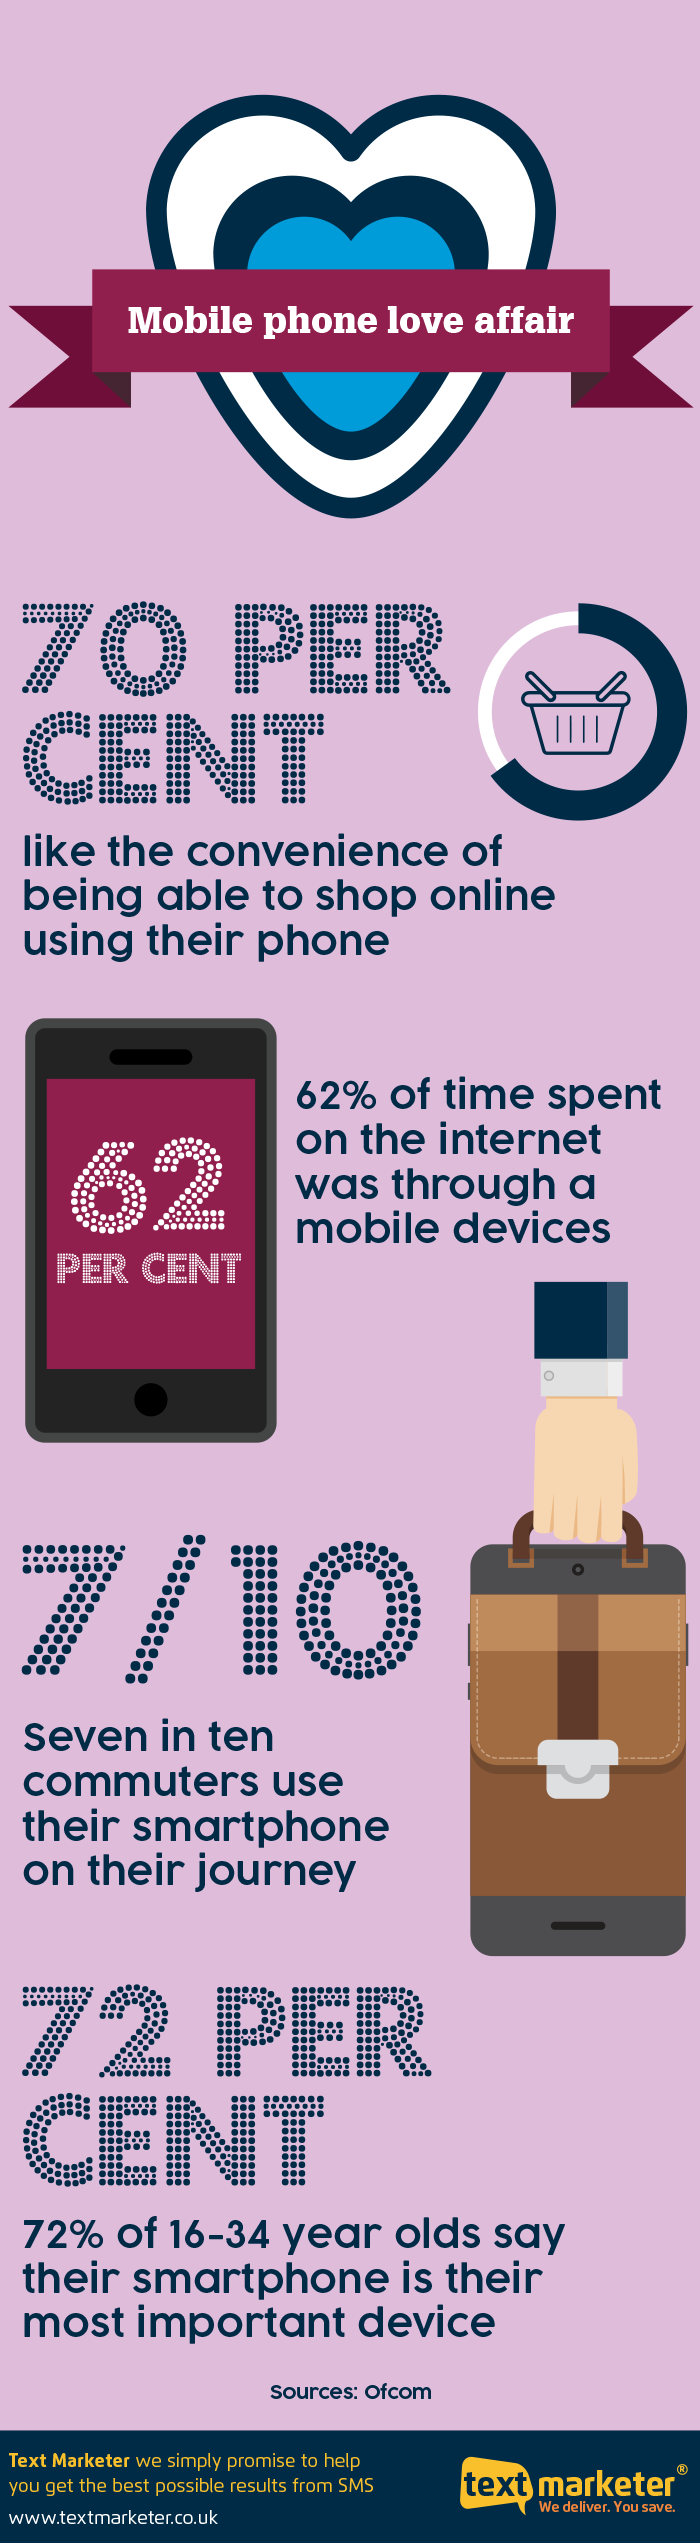 Mobile phone love infographic